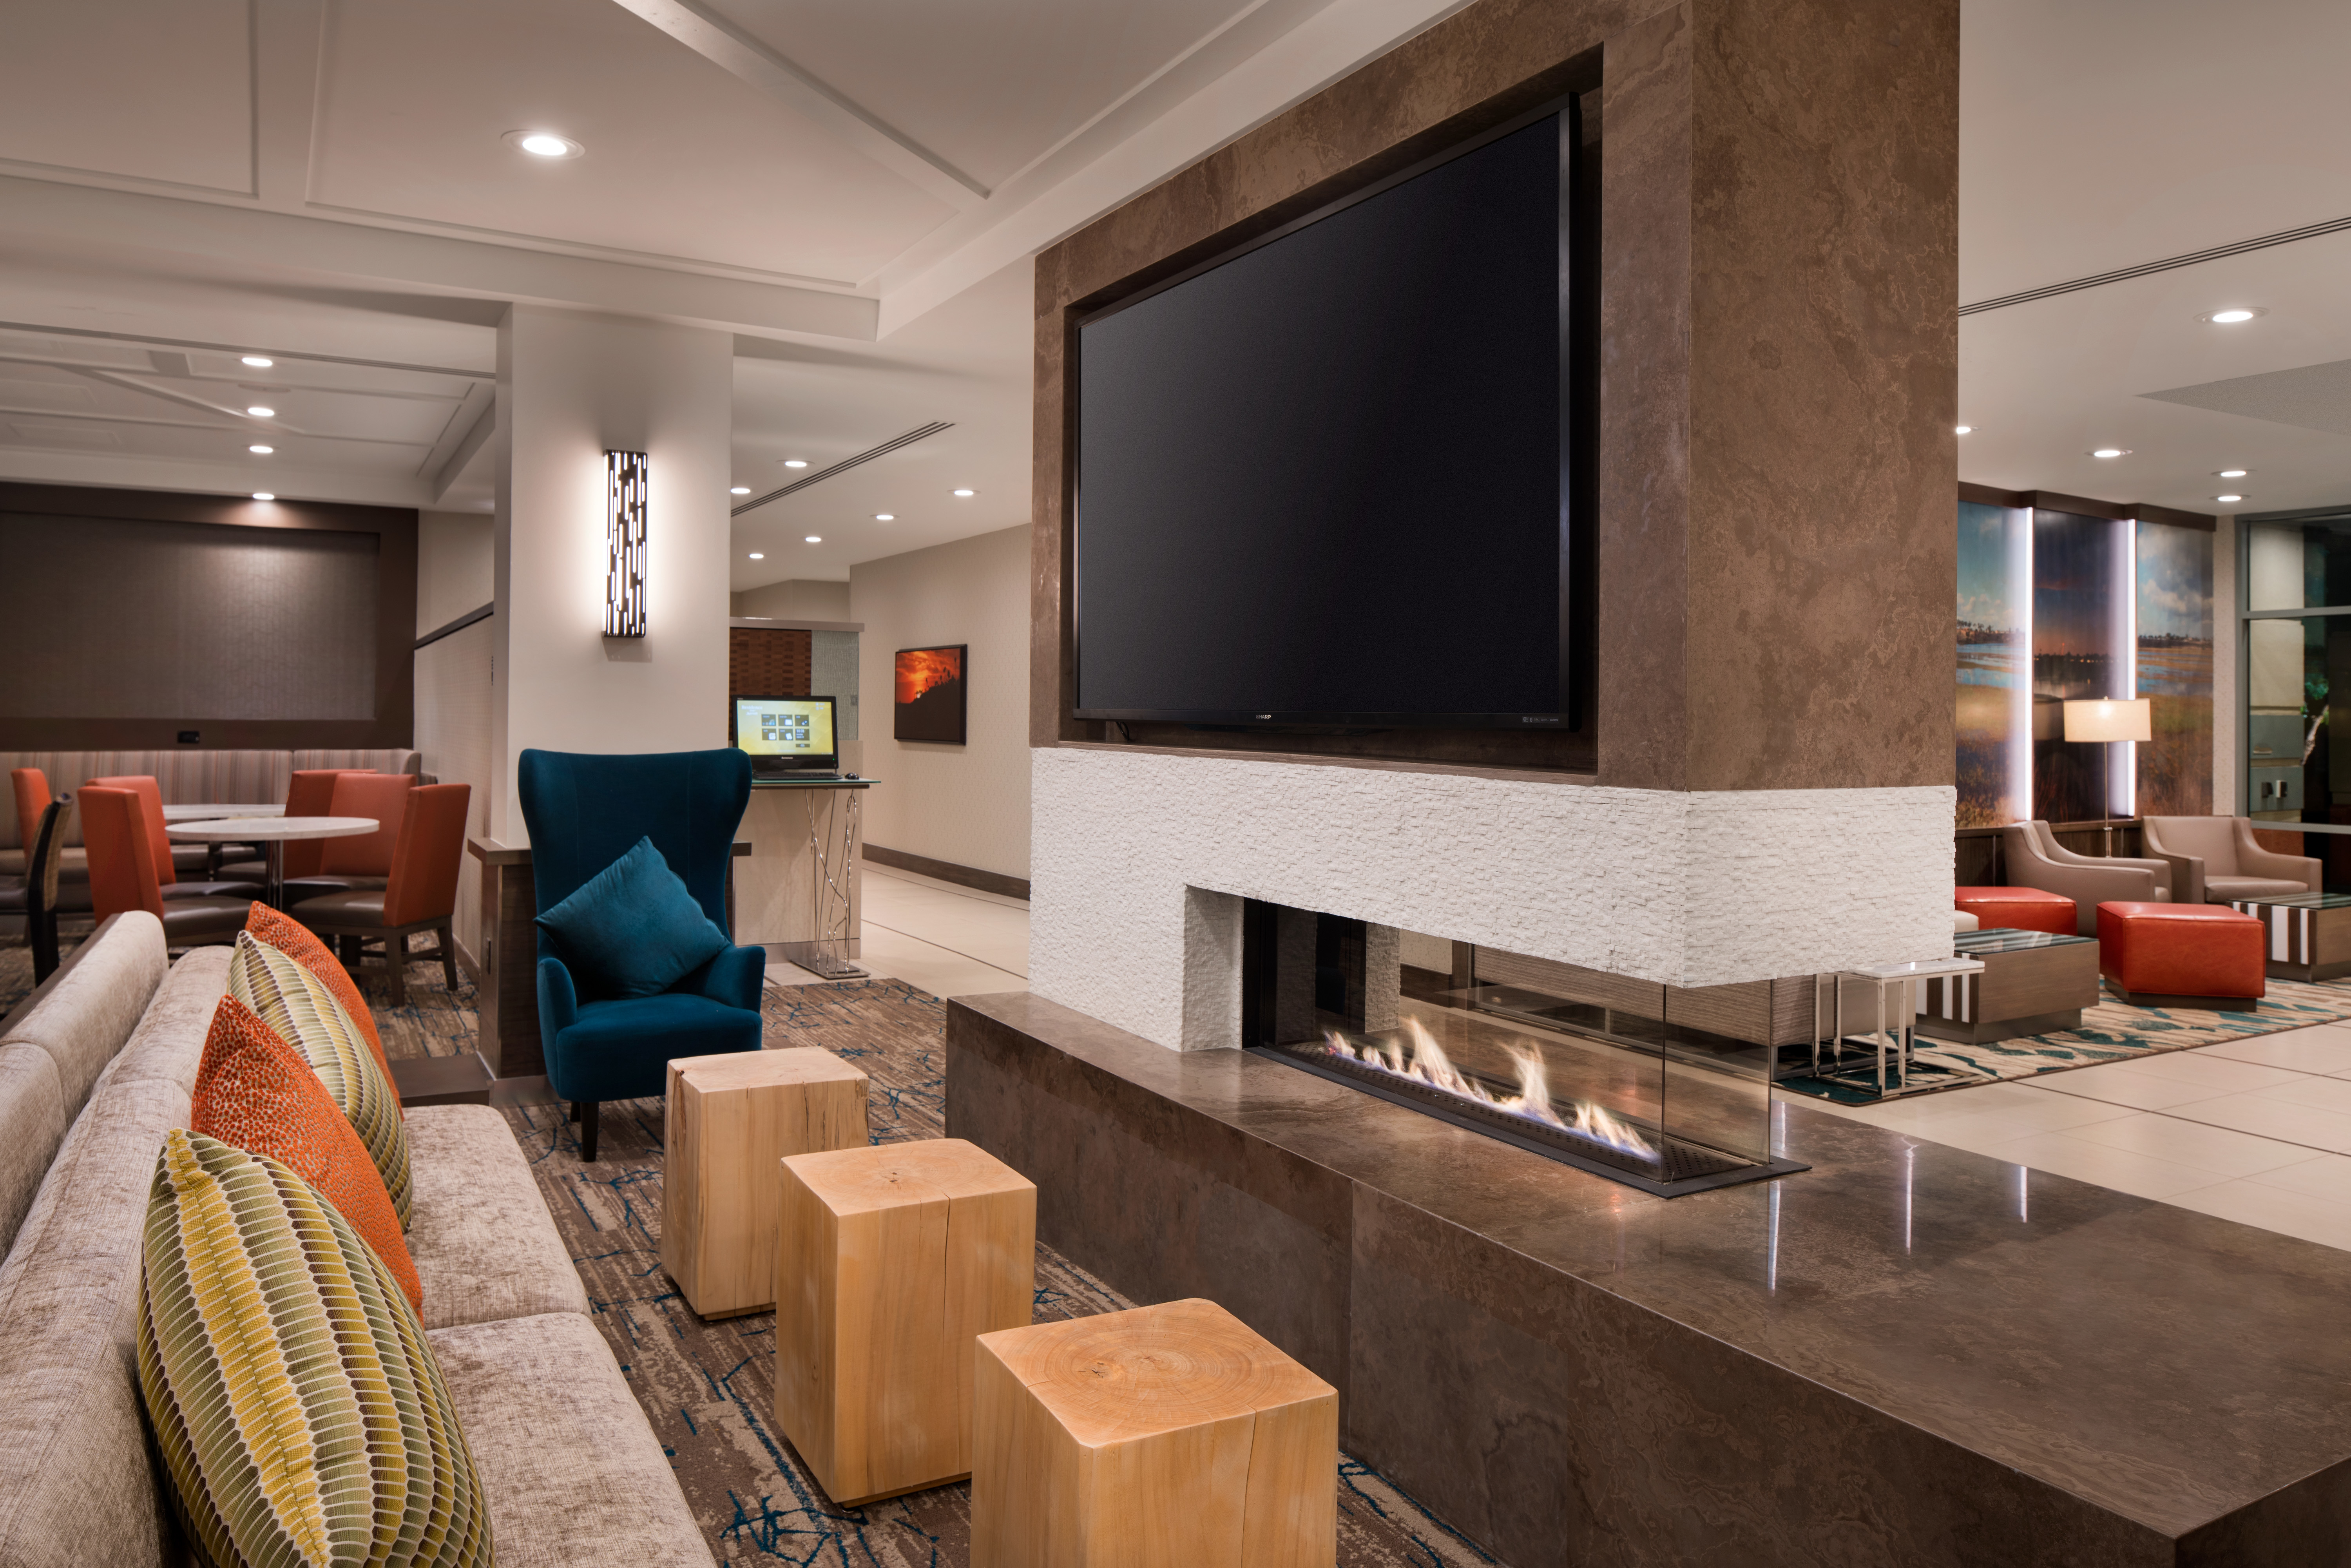 Lobby Seating Area - During downtime, spread out in our newly redesigned lobby area, where you can catch your favorite TV shows and sporting events on our large flat-panel TV.